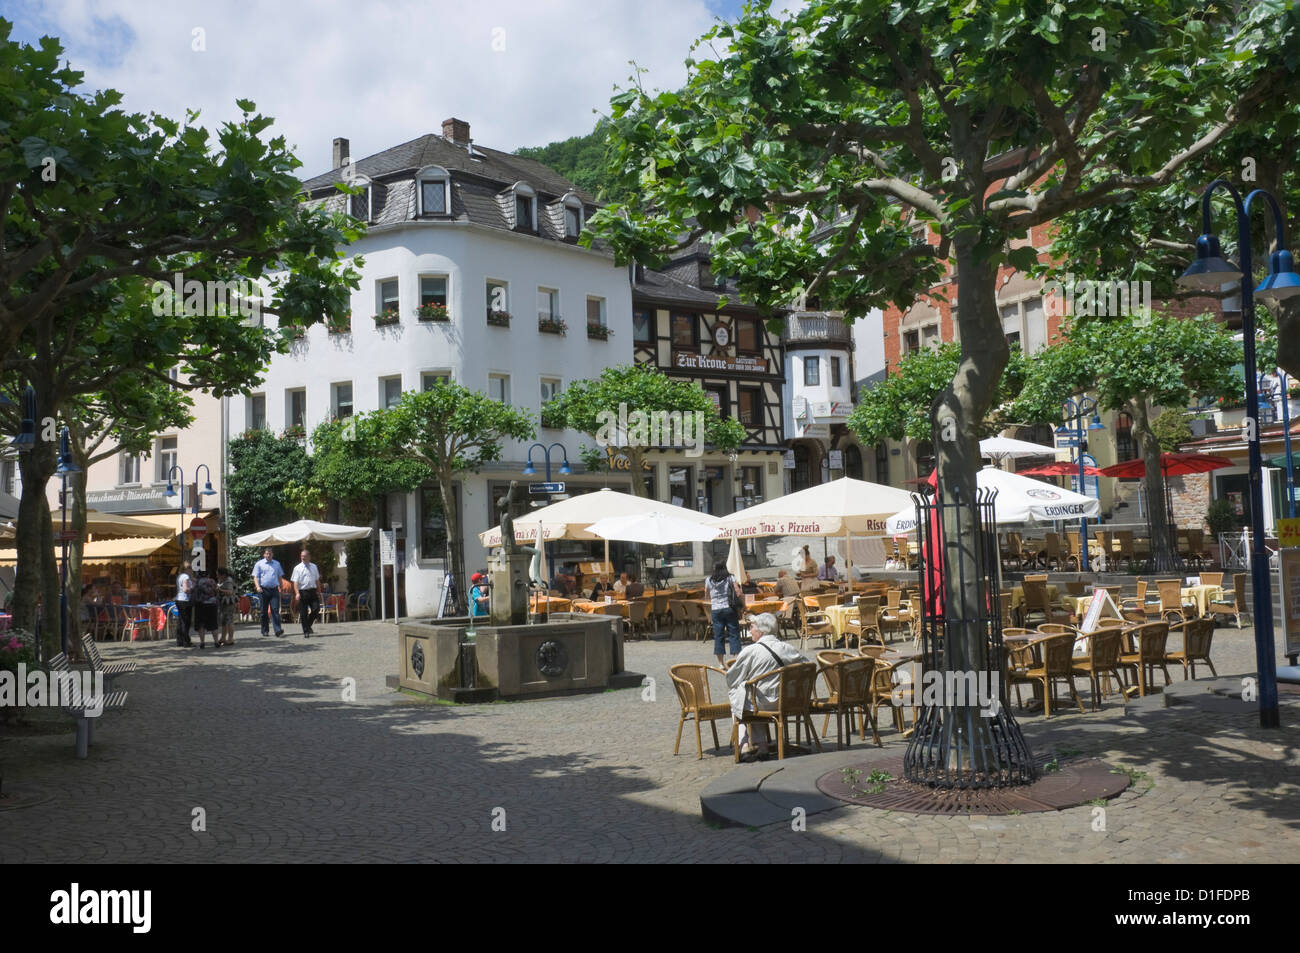 Market Square, Idar Oberstein, famous for gem stones, on the River Nahe, Rhineland Palatinate, Germany, Europe - Stock Image